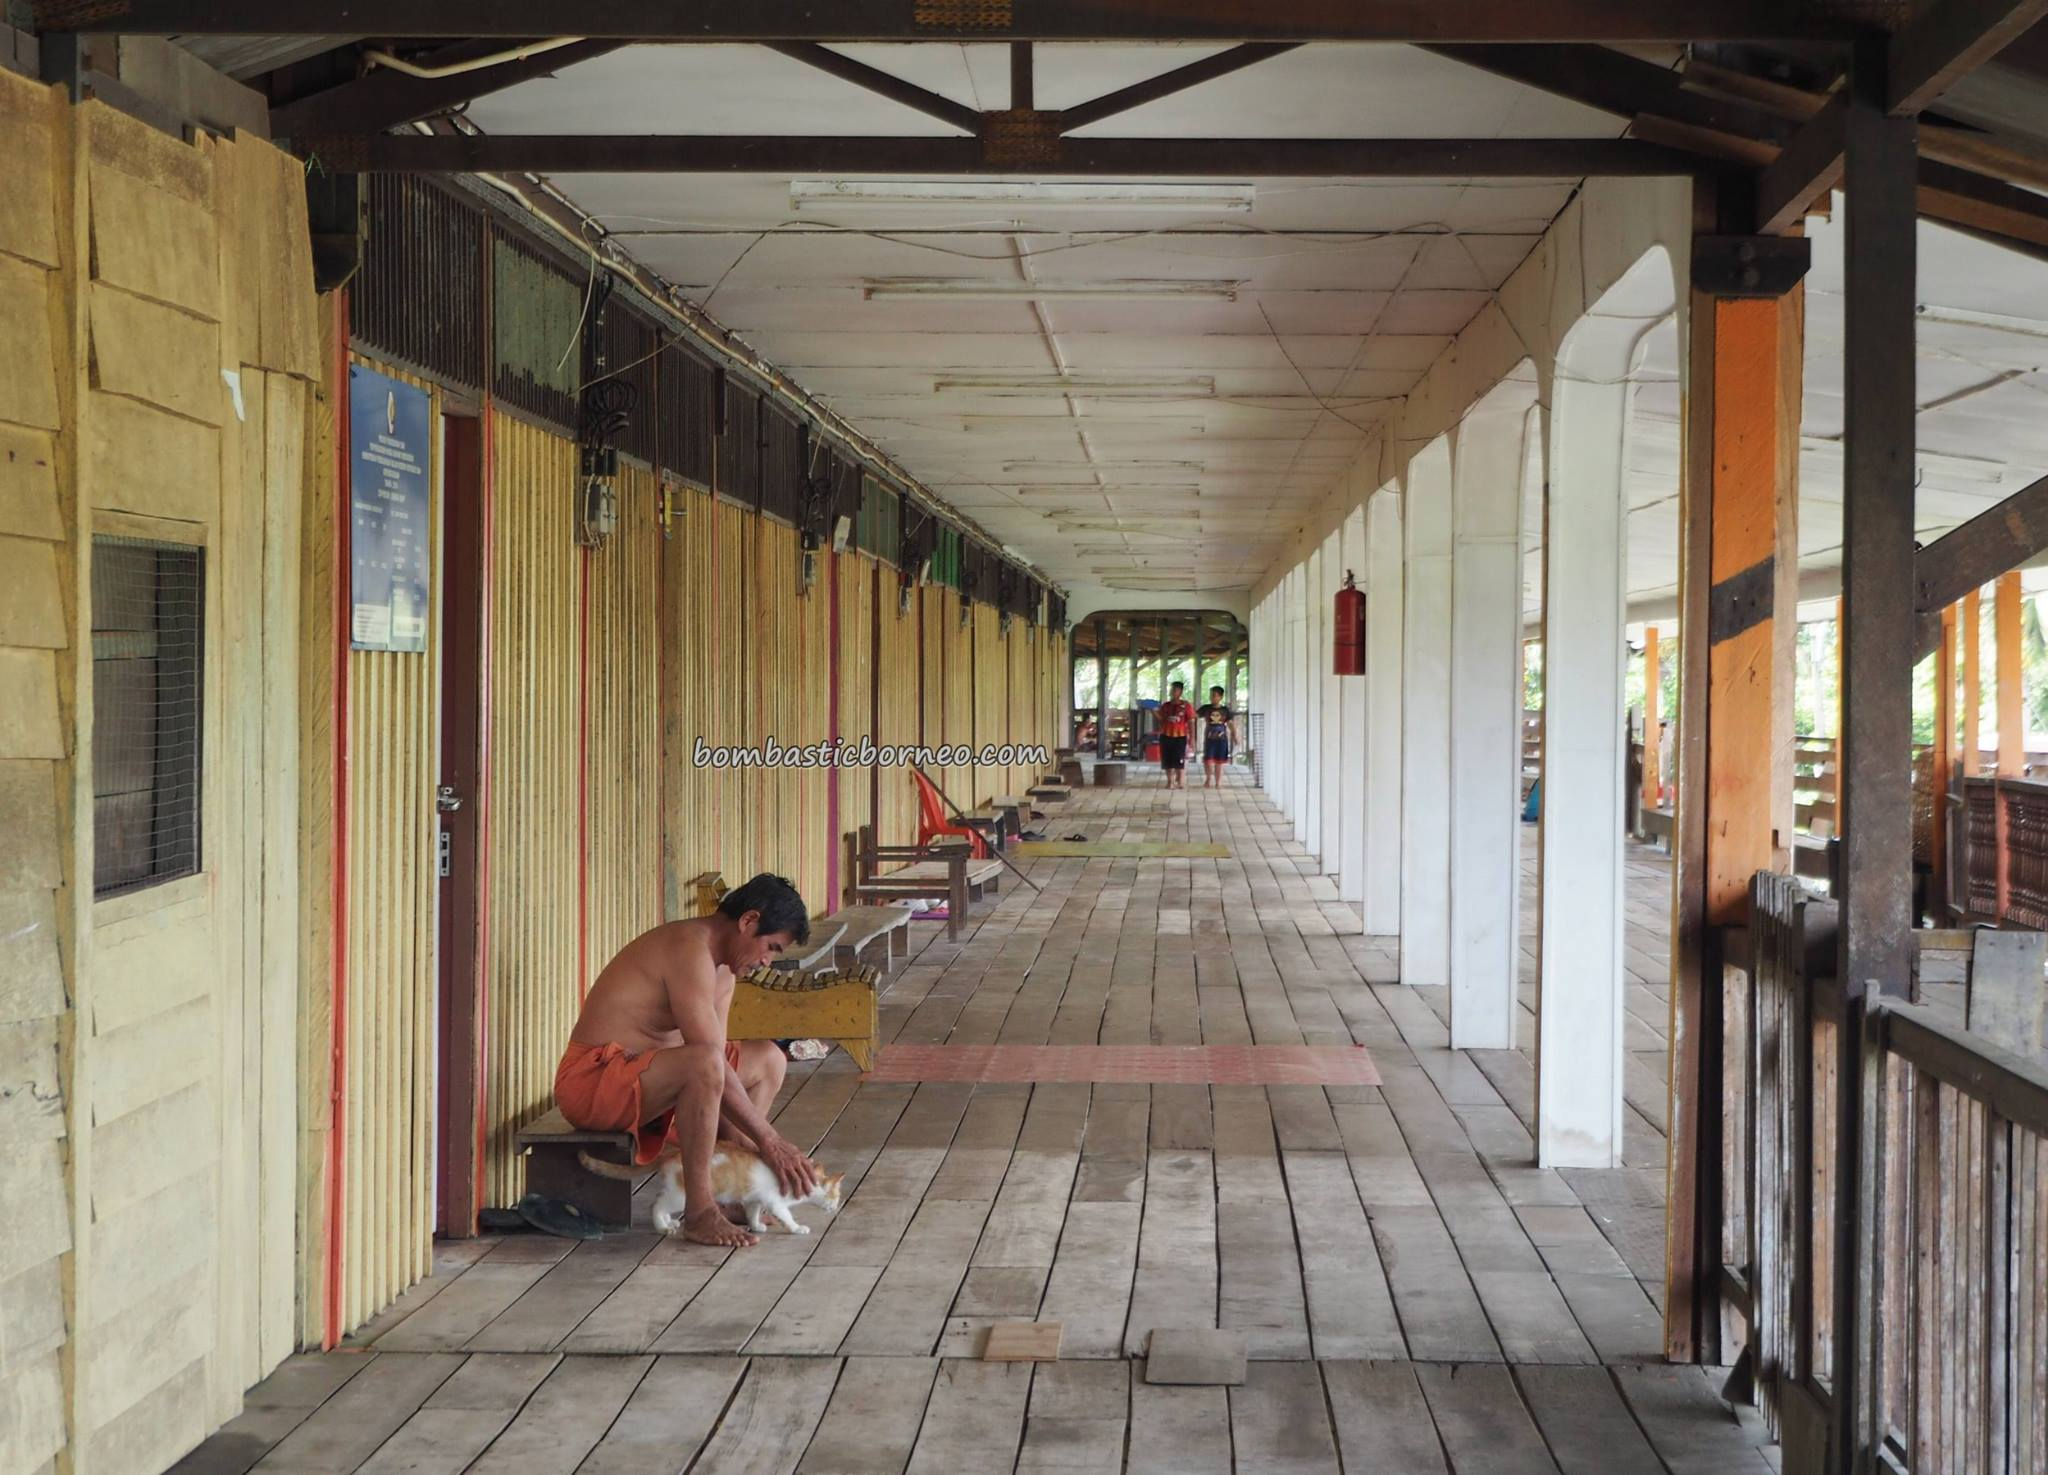 longhouse, village, authentic, Bakun Dam resettlement, Kapit, Borneo, Sarawak, Malaysia, native, tribe, Dayak Kayan, Tourism, travel guide, backpackers, 沙捞越长屋